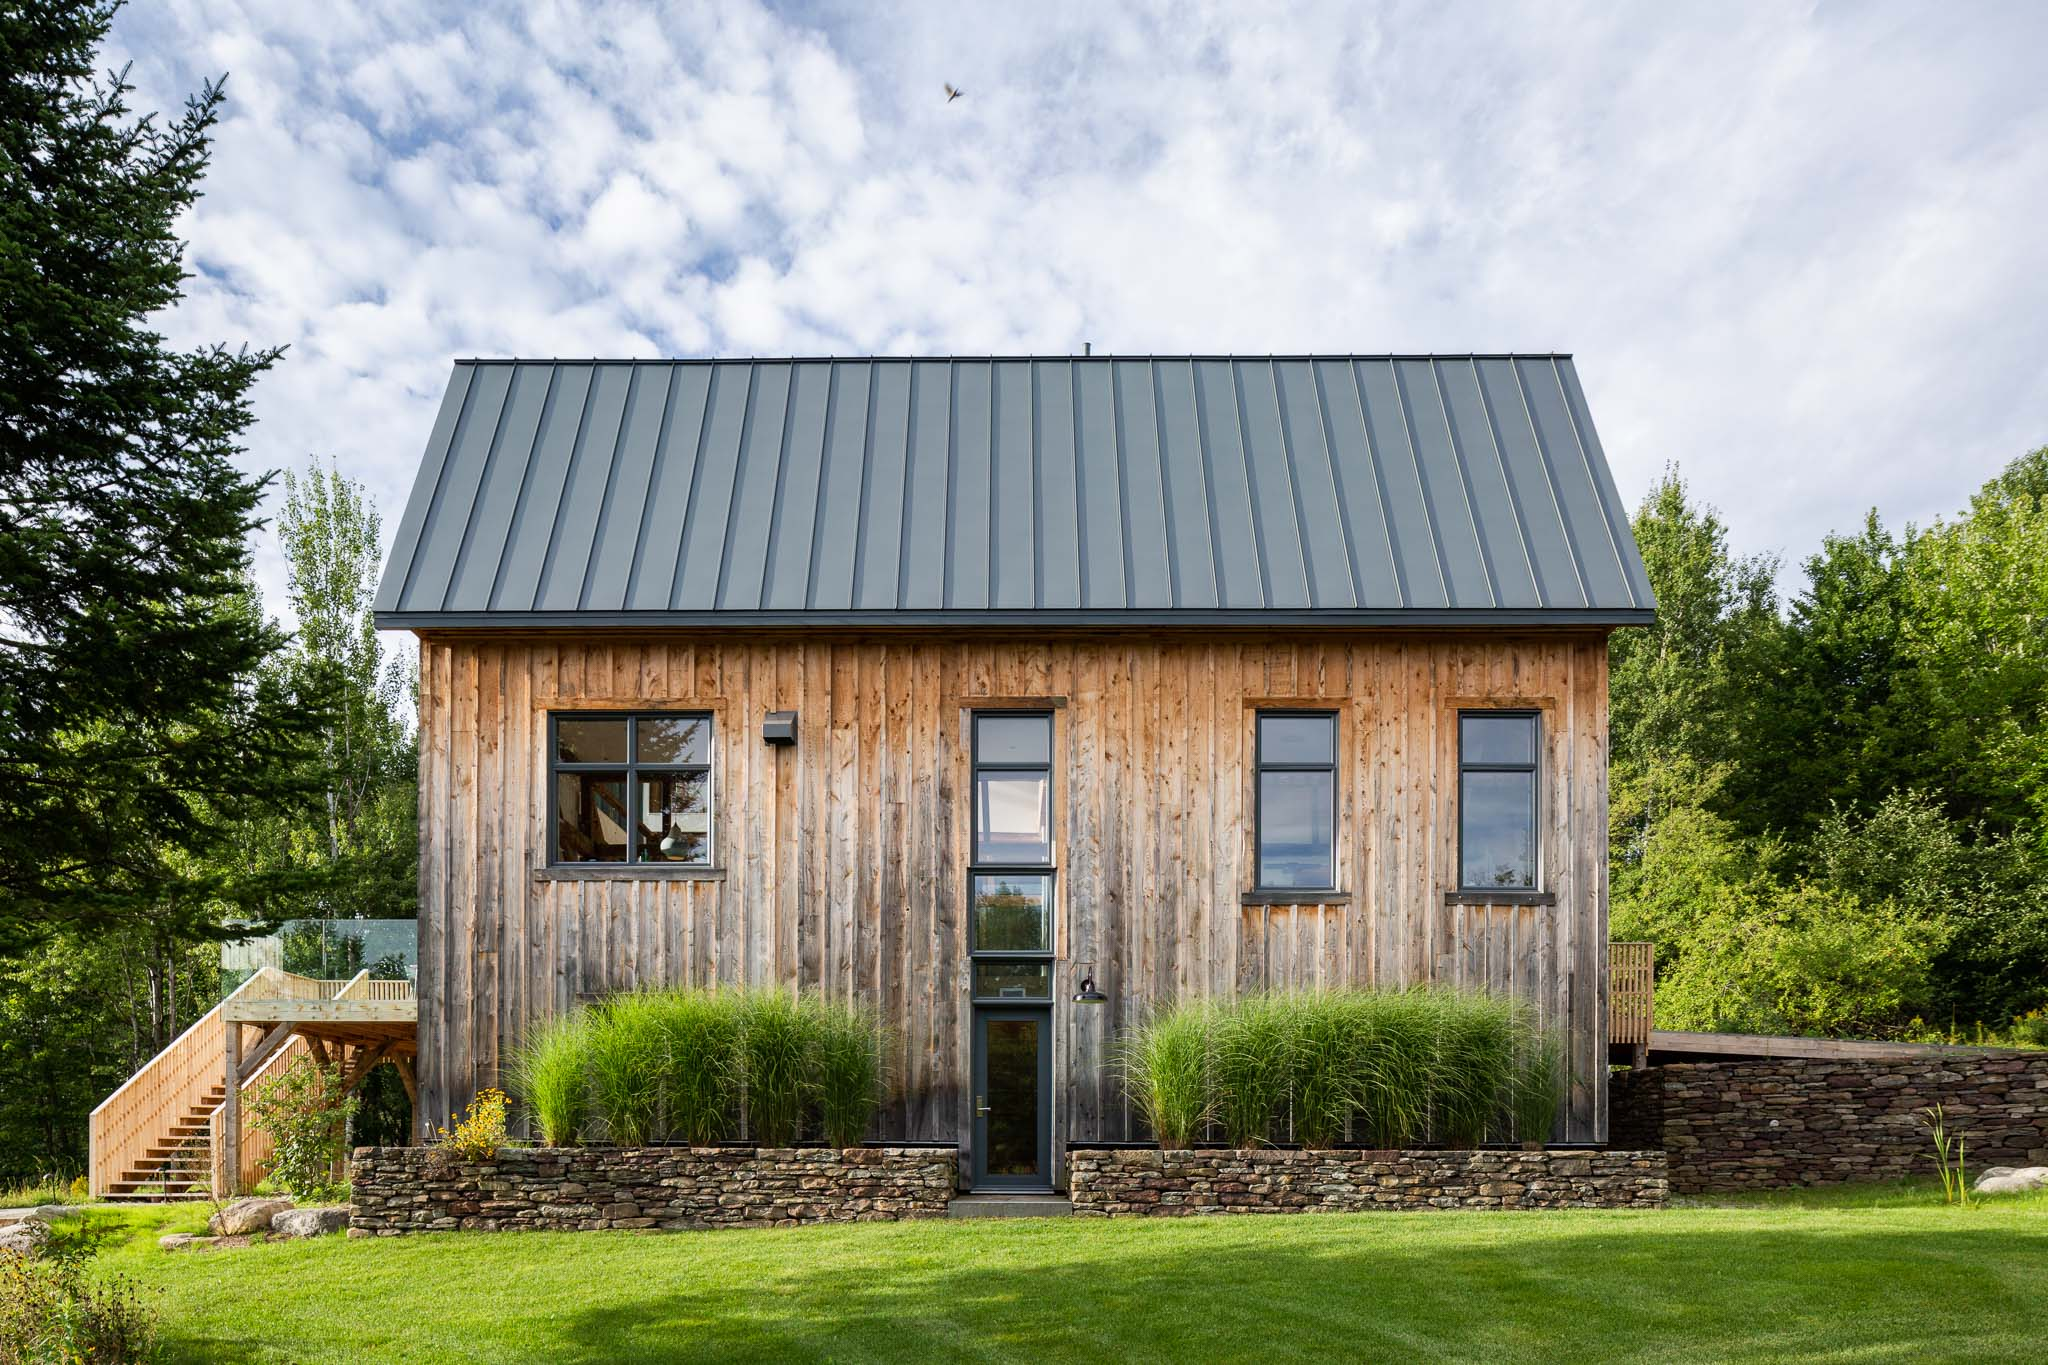 Renovation of a cottage in the Eastern Townships inspired by a barn. Footbridge leading to the main entrance. Exterior cladding of boards of cedar boards and batten. Cedar deck